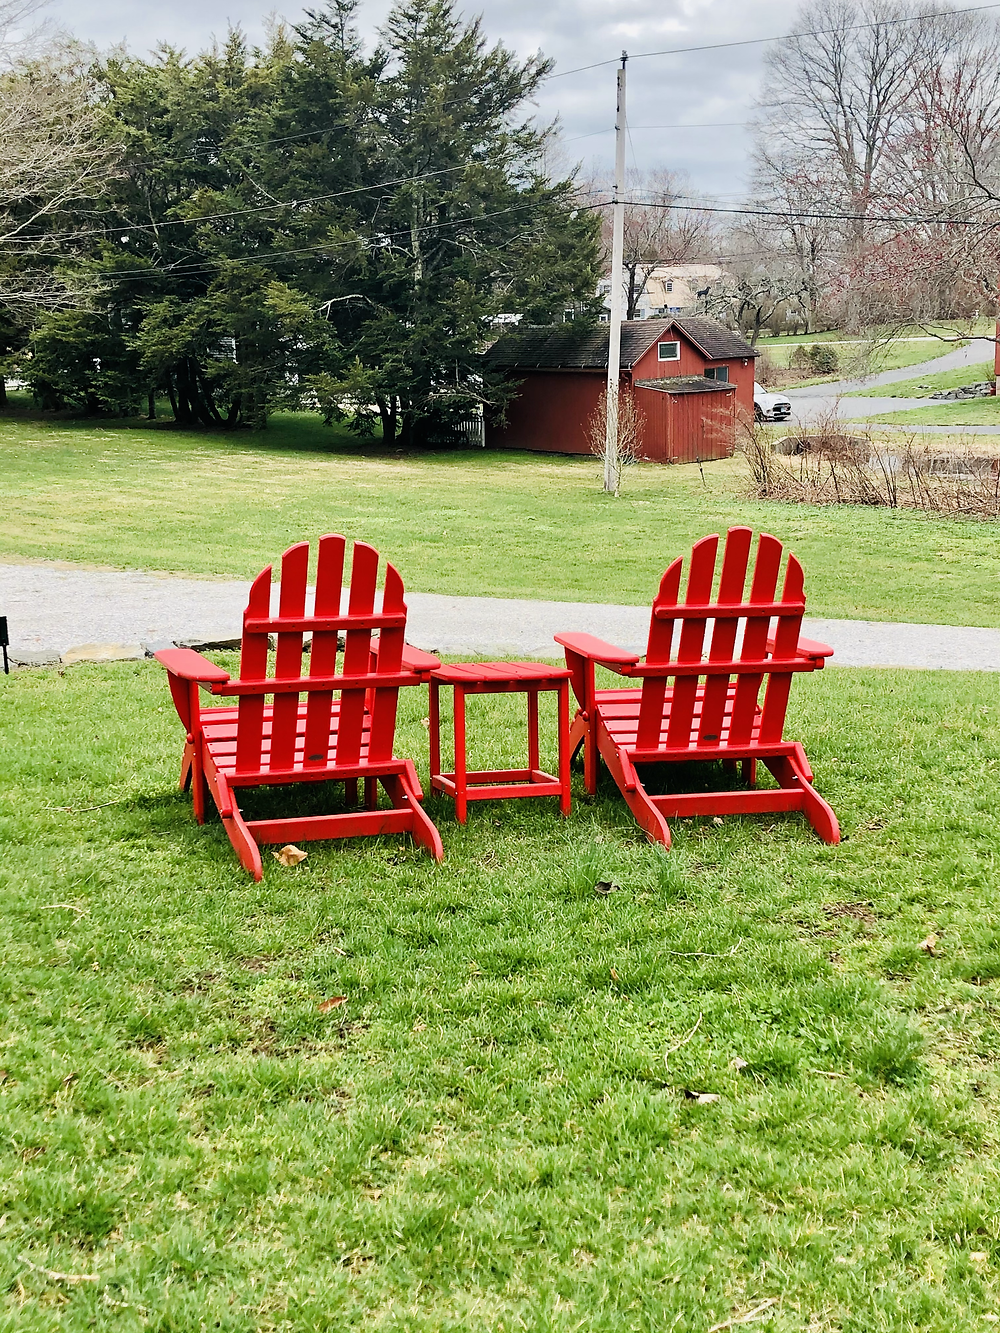 Two red wooden adirdondack chairs sit on a grassy yard facing a bit red bar and gravel driveway.